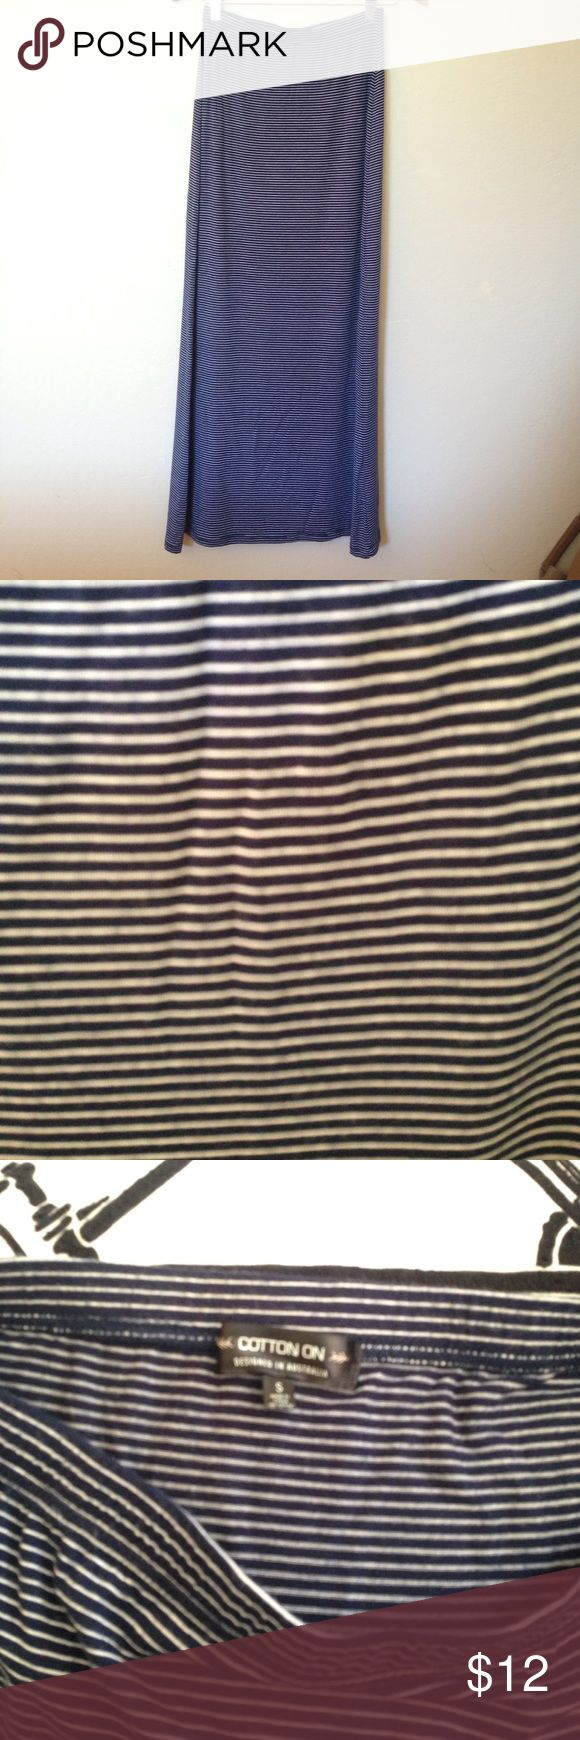 Navy blue & white striped maxi skirt Navy Blue & White cotton jersey maxi skirt from Cotton On. Size S. Super soft. Cotton On Skirts Maxi